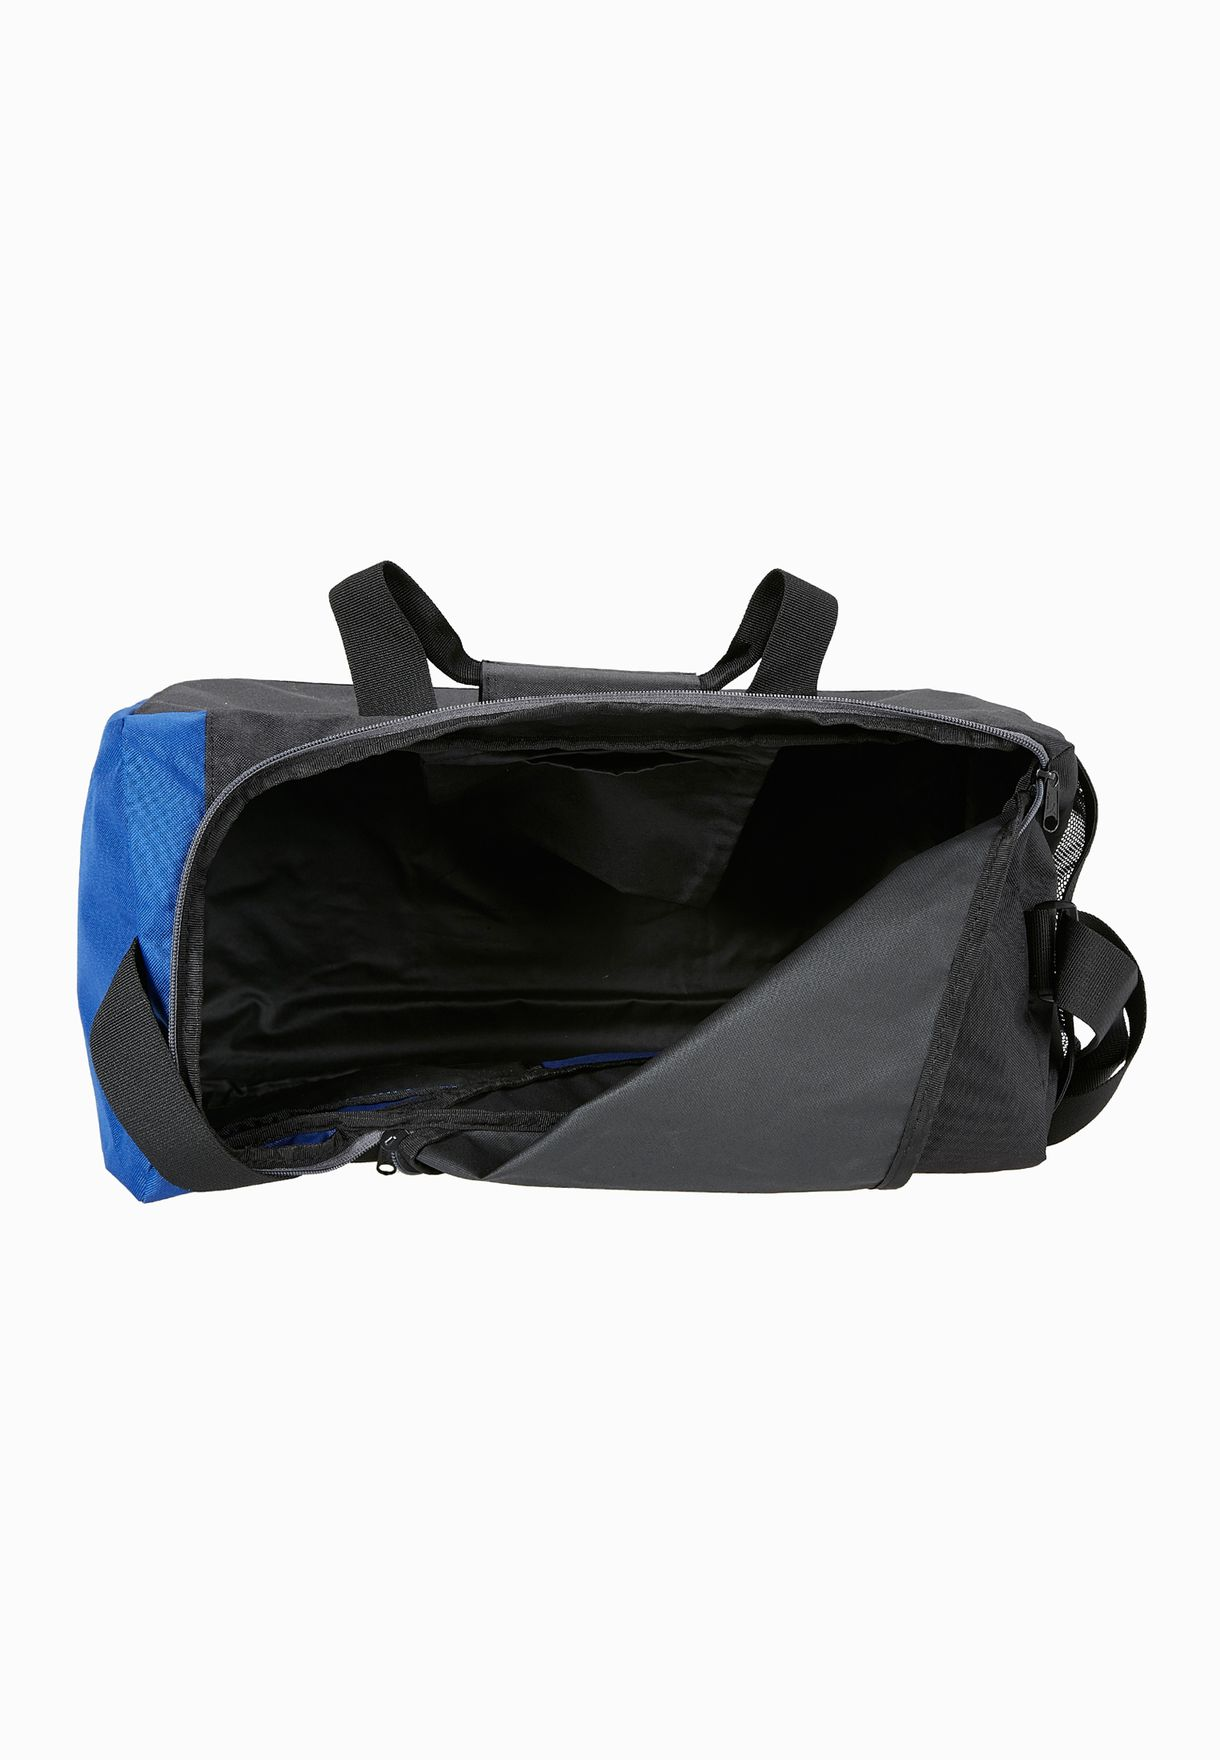 b2600000bd Fundamentals Sports Small Duffel Bag